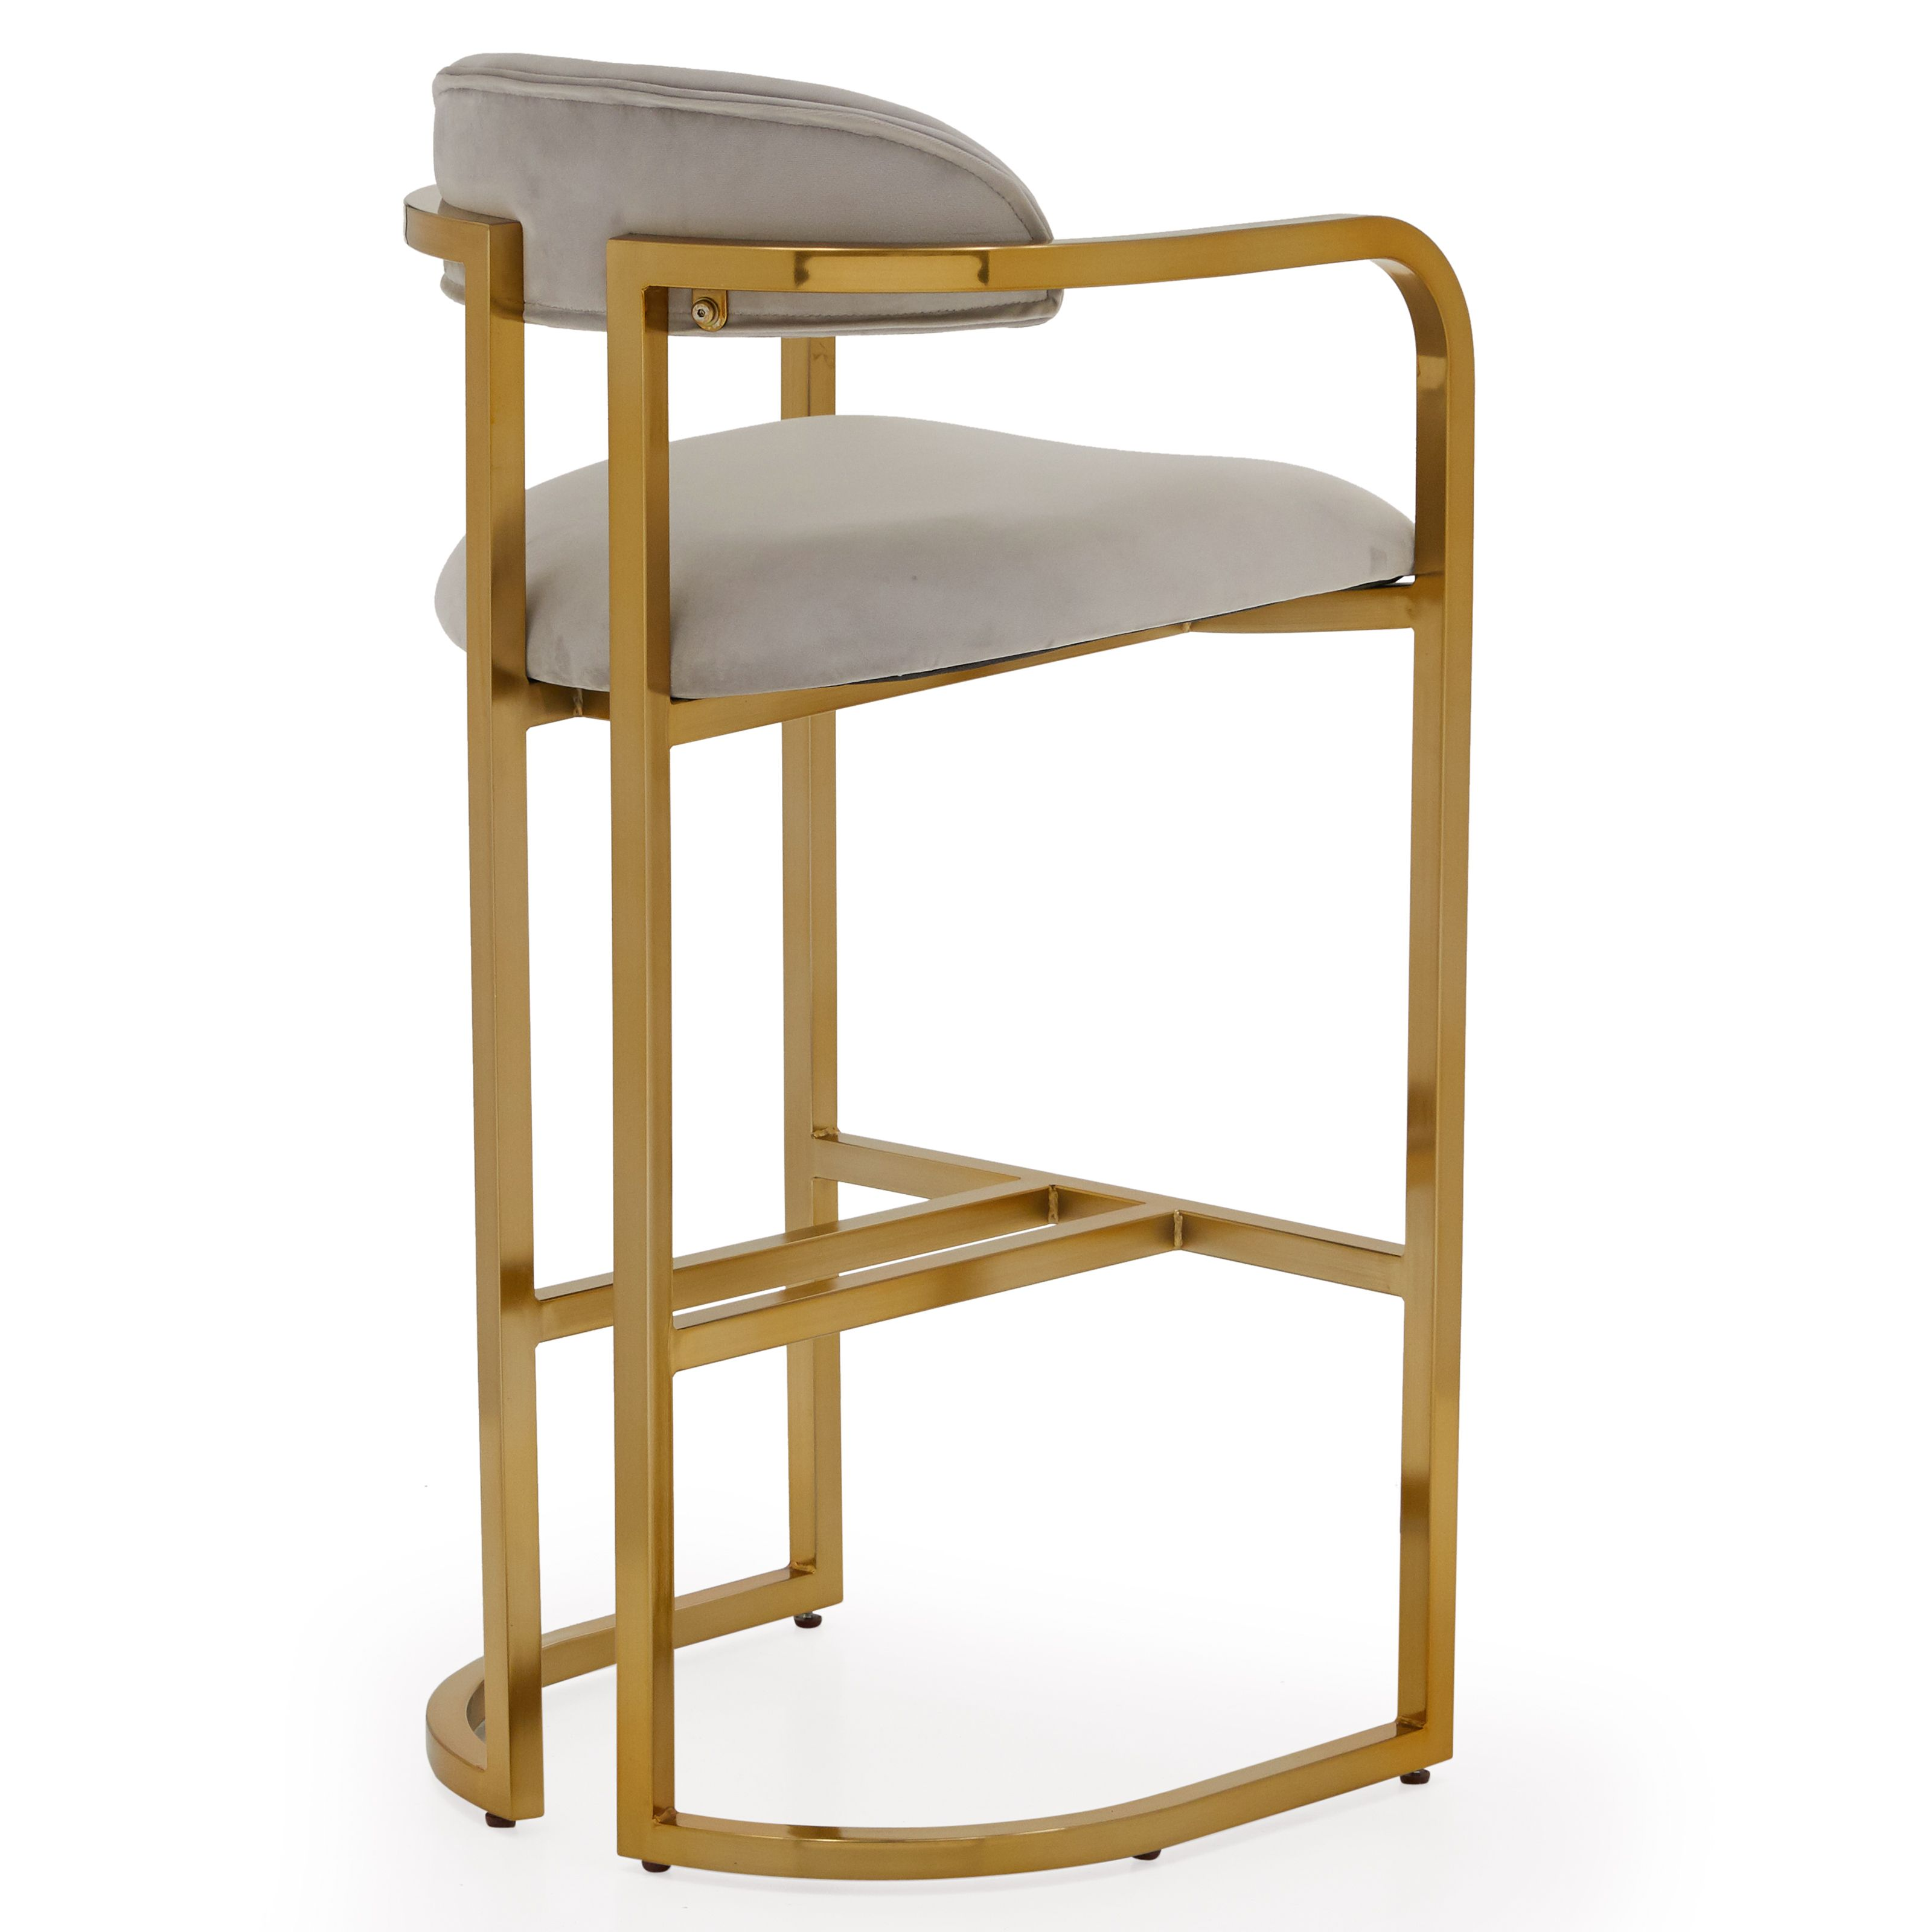 Enjoyable Modrn Glam Marni Metal Base Bar Stool Multiple Colors Squirreltailoven Fun Painted Chair Ideas Images Squirreltailovenorg